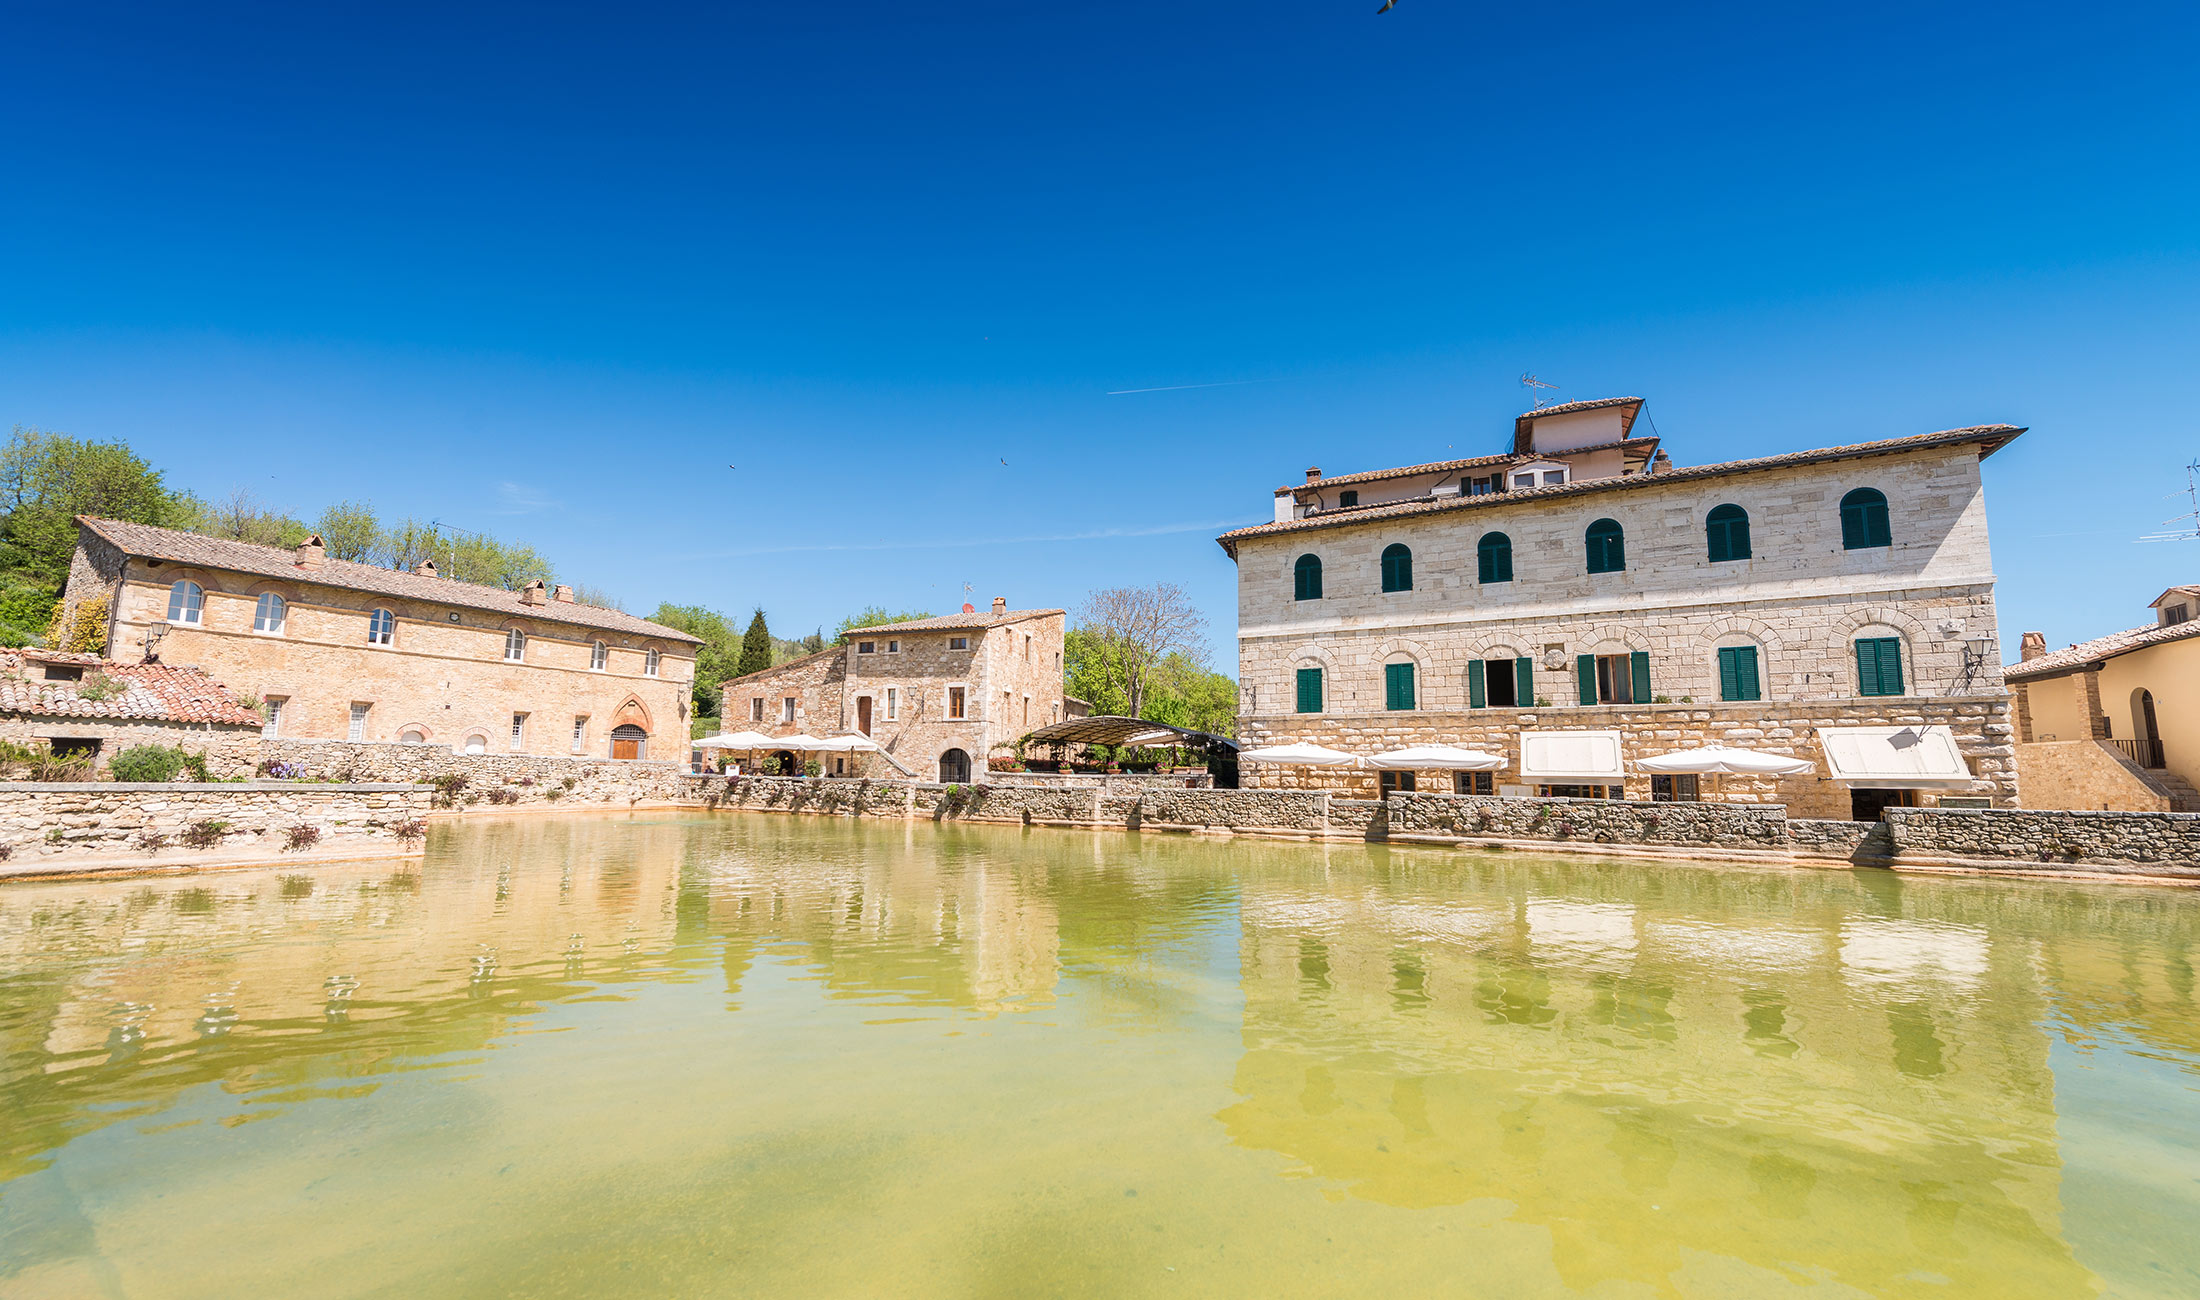 Bagno vignoni italy june the small medieval town of